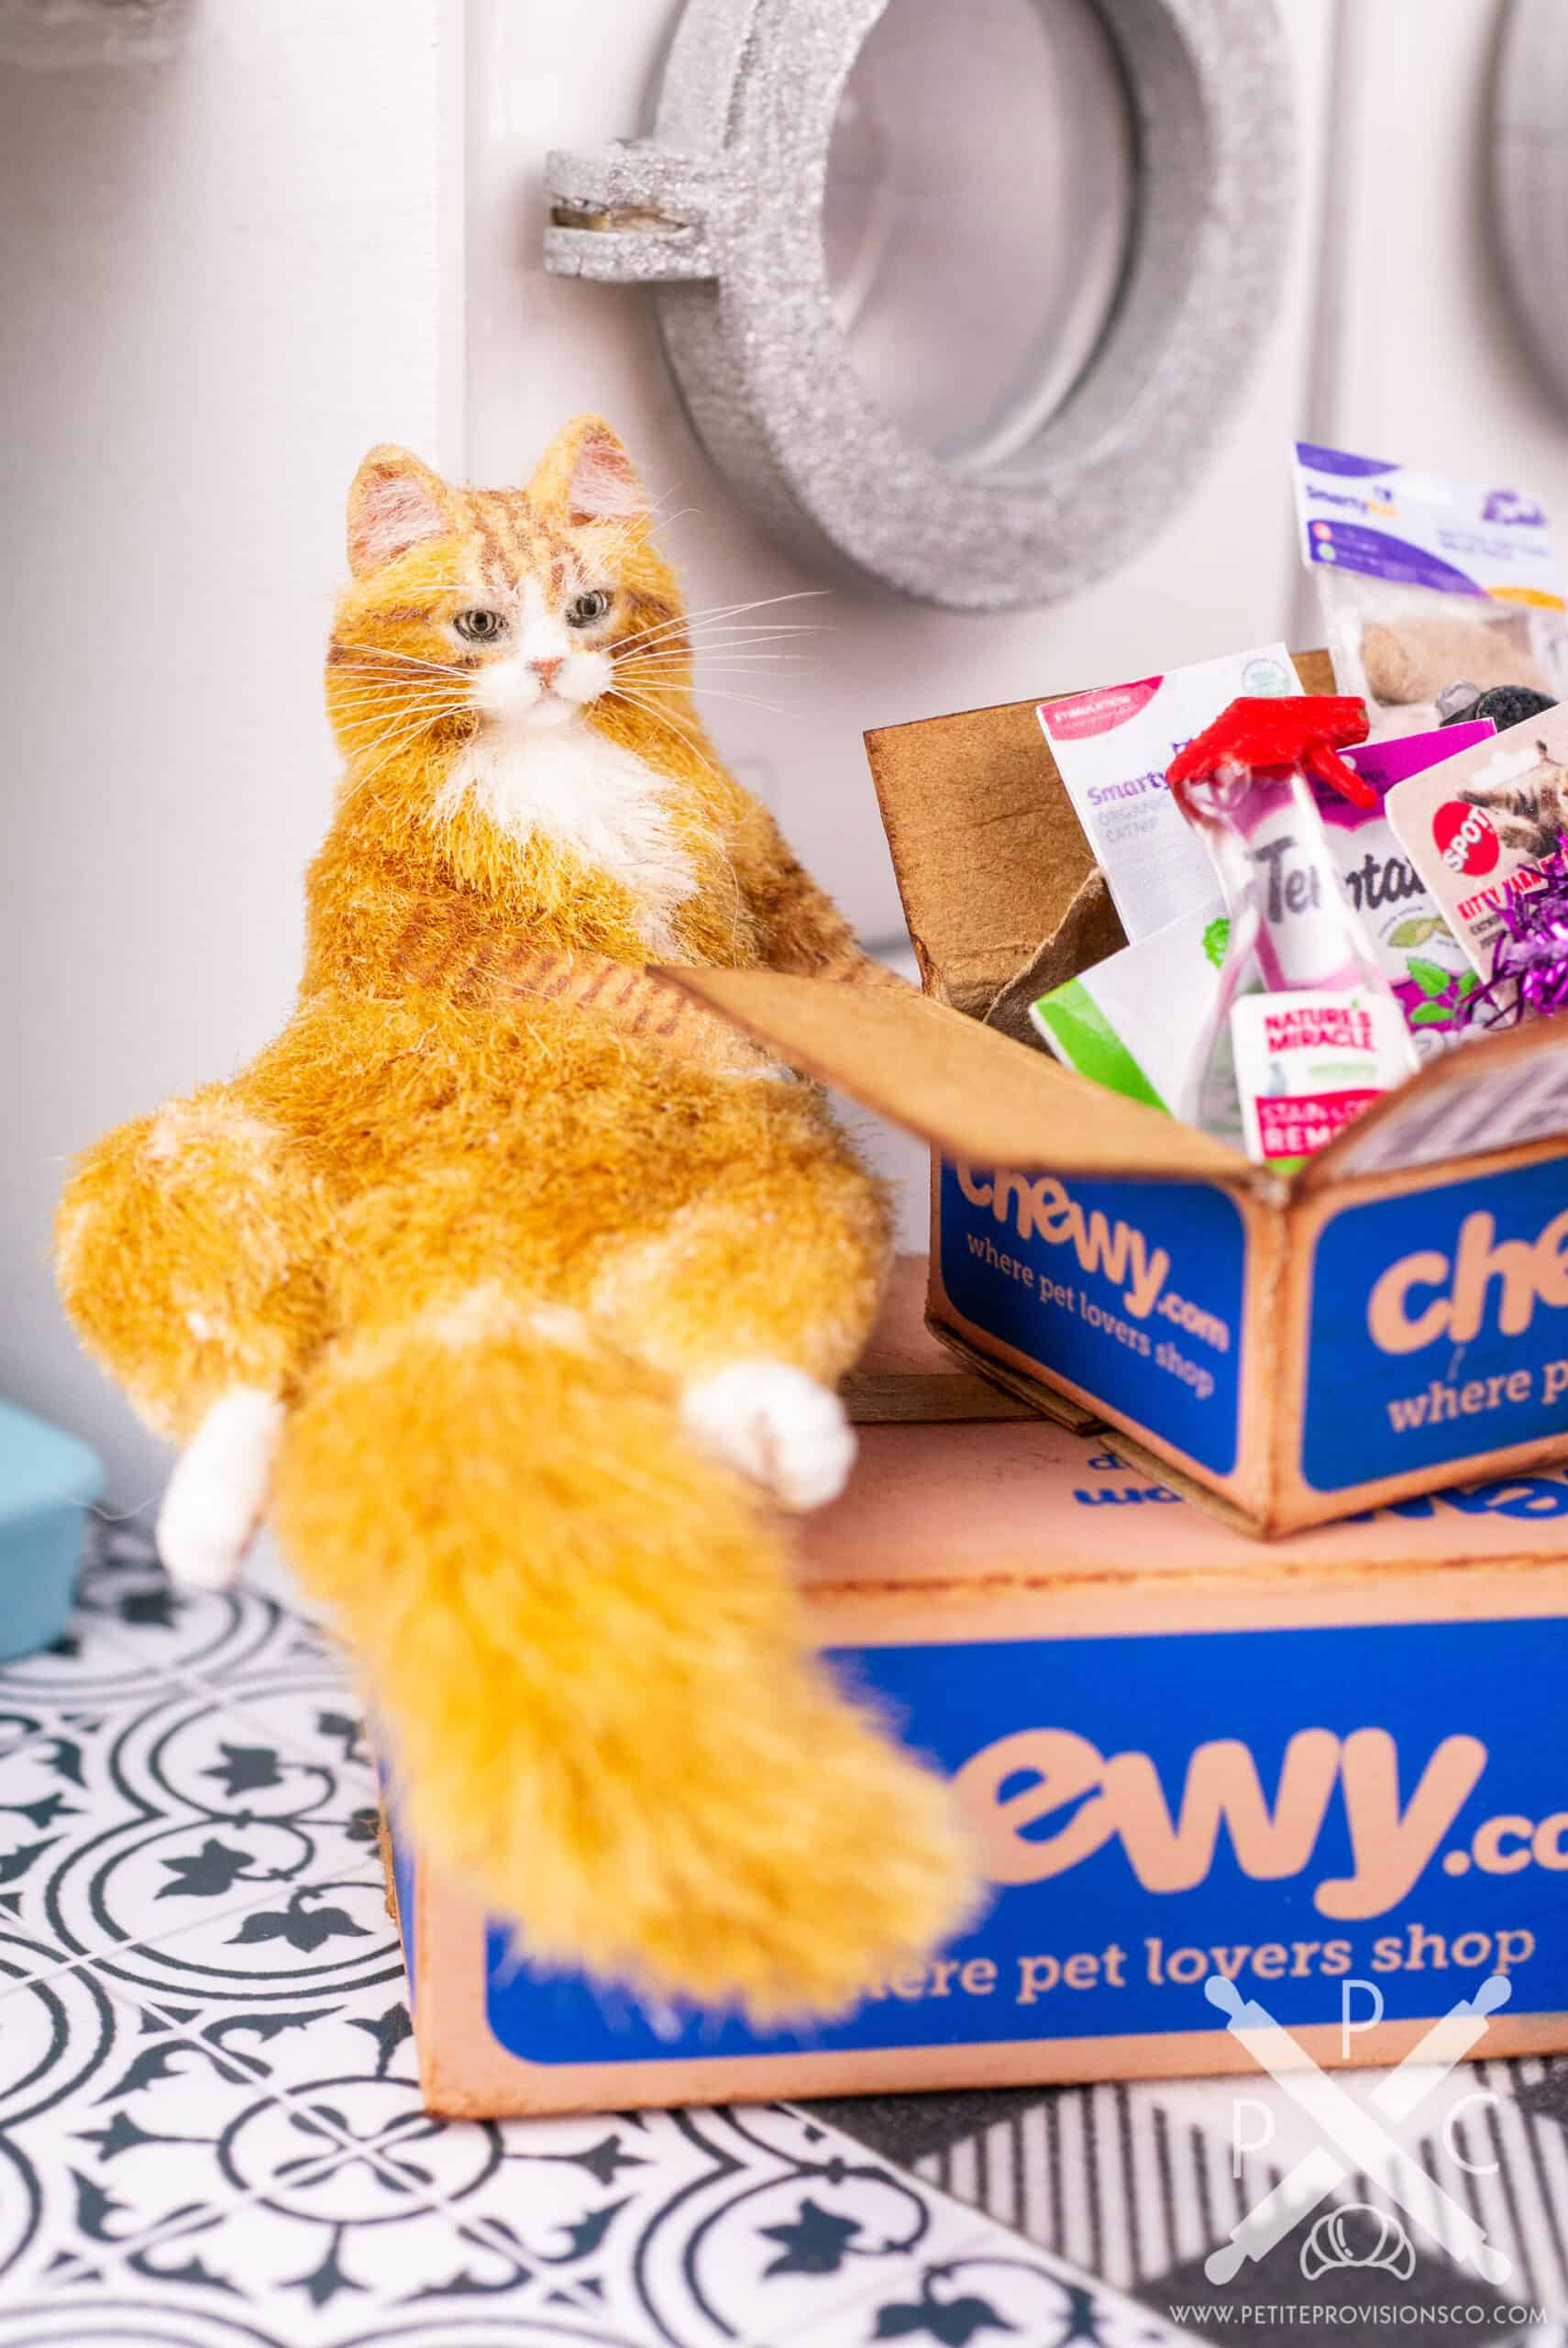 Dollhouse miniature fat orange tabby cat sitting on a cardboard box in a one inch scale scene by Erika Pitera, The Petite Provisions Co.